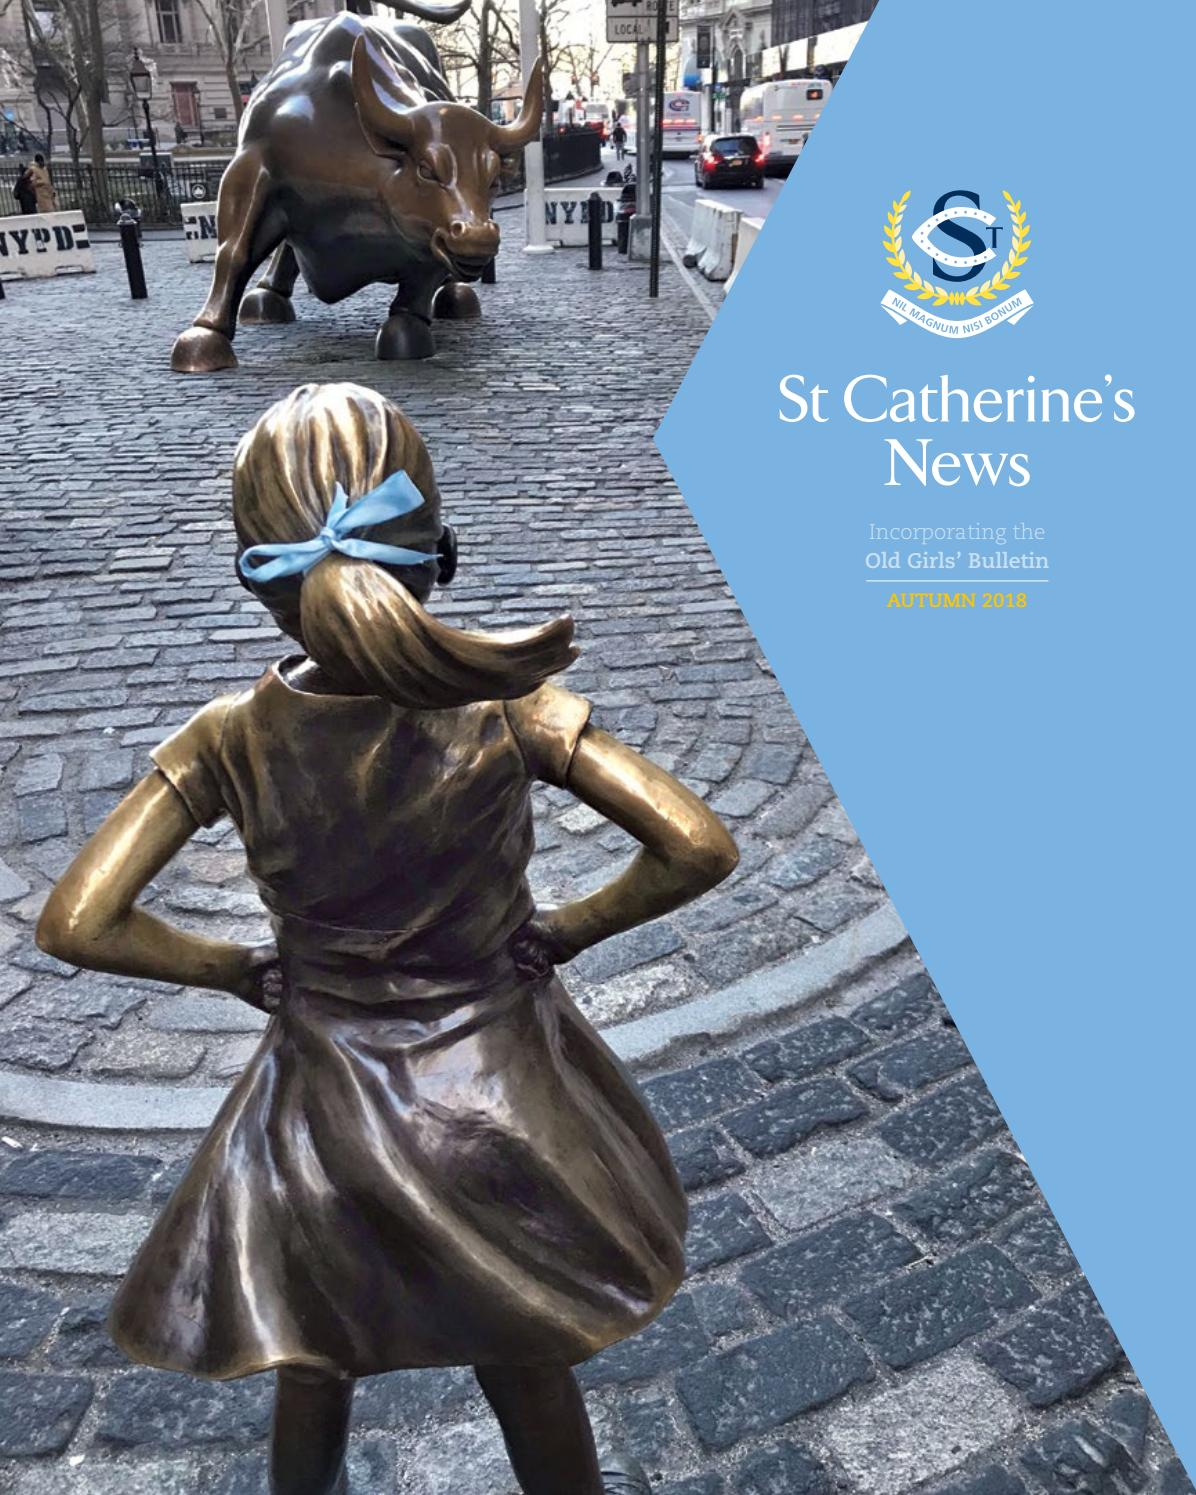 St Catherine's News Autumn 2018 by St Catherine's School - issuu